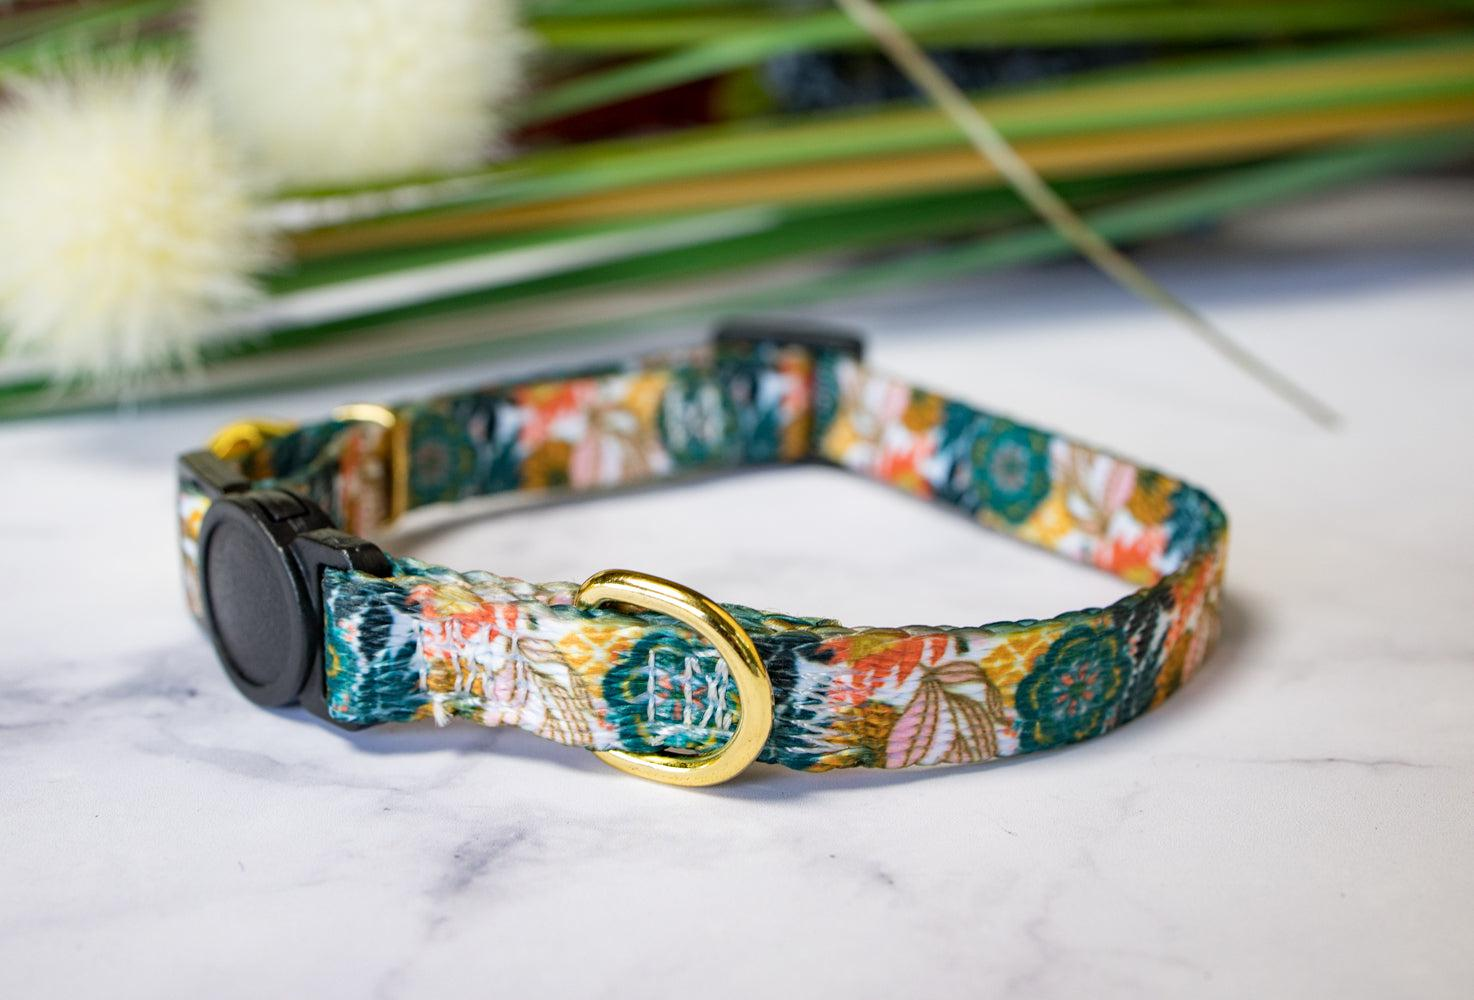 Bohemian Garden Cat Collar / Toy Breed Dog Collar / Puppy Collar-Dizzy Dog Collars